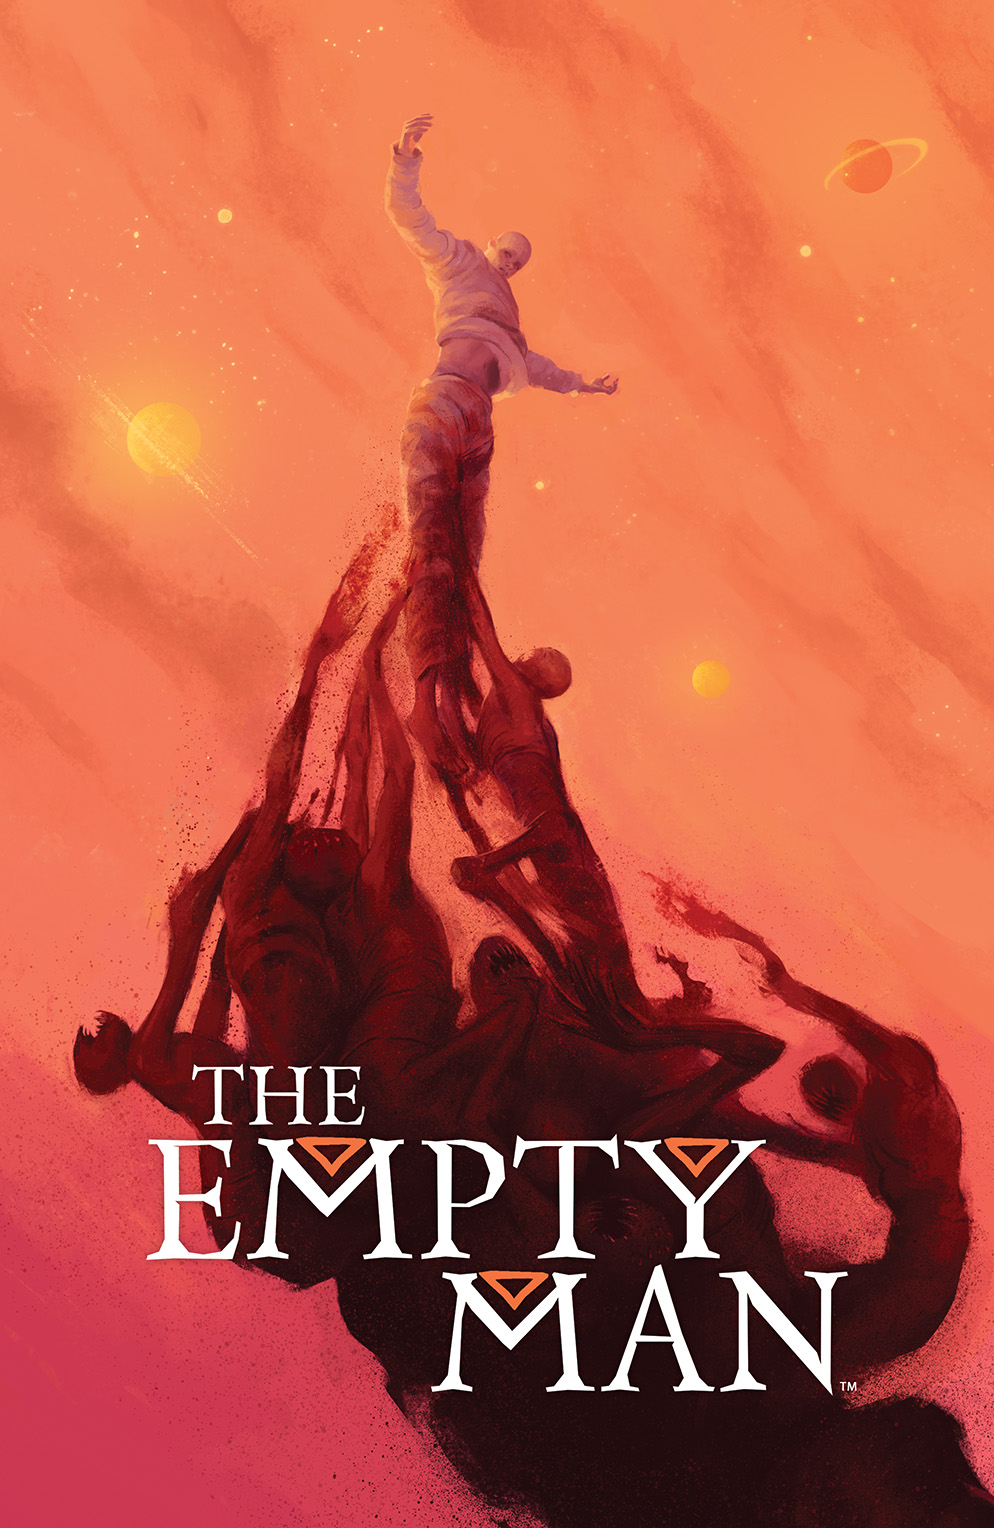 THE EMPTY MAN #5 Cover